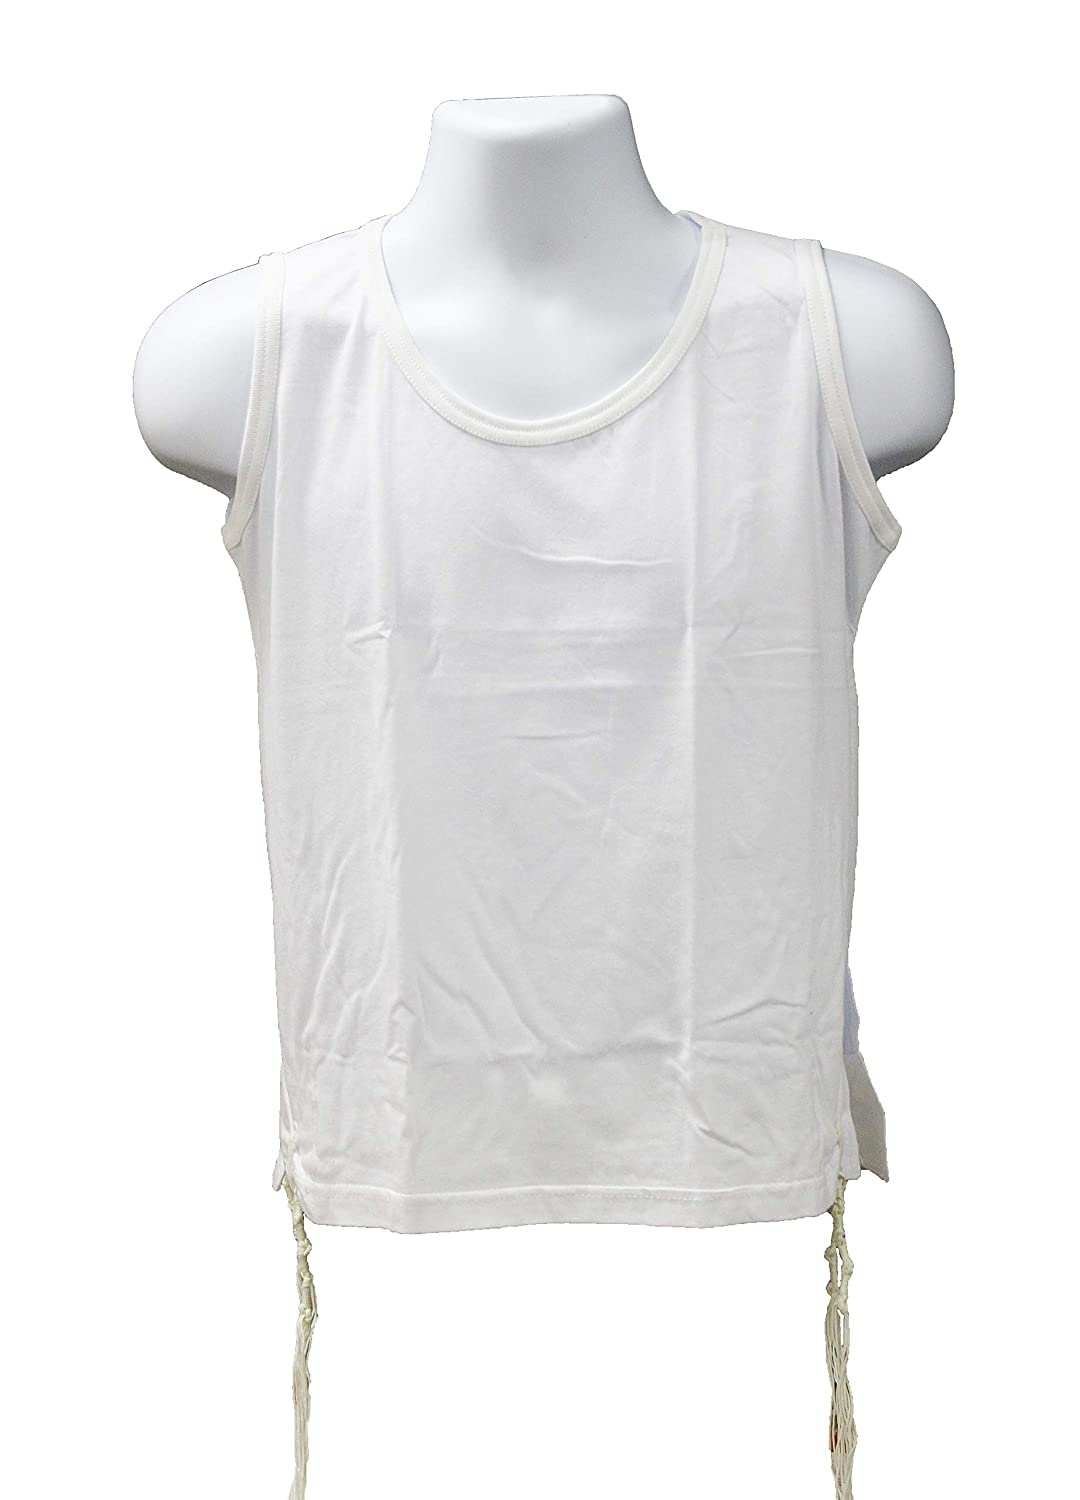 Zion Judaica 100% Cotton Comfortable Quality T-Shirt Tzitzis Garment Certified Kosher Imported from Israel in All Sizes